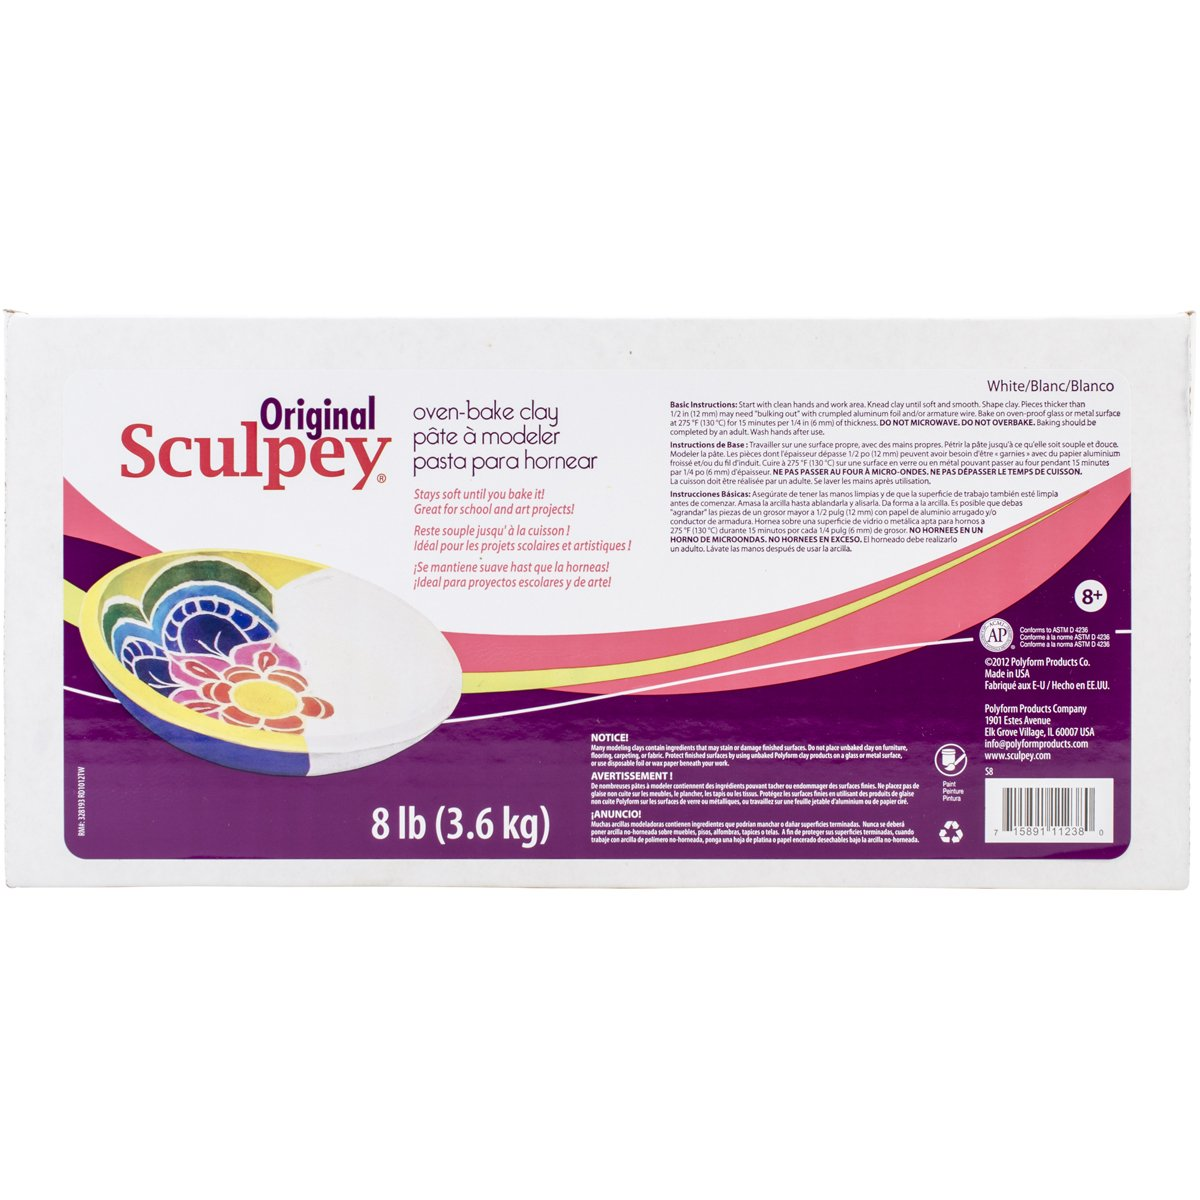 Sculpey S8 Original Polymer Clay, 8-Pound, White